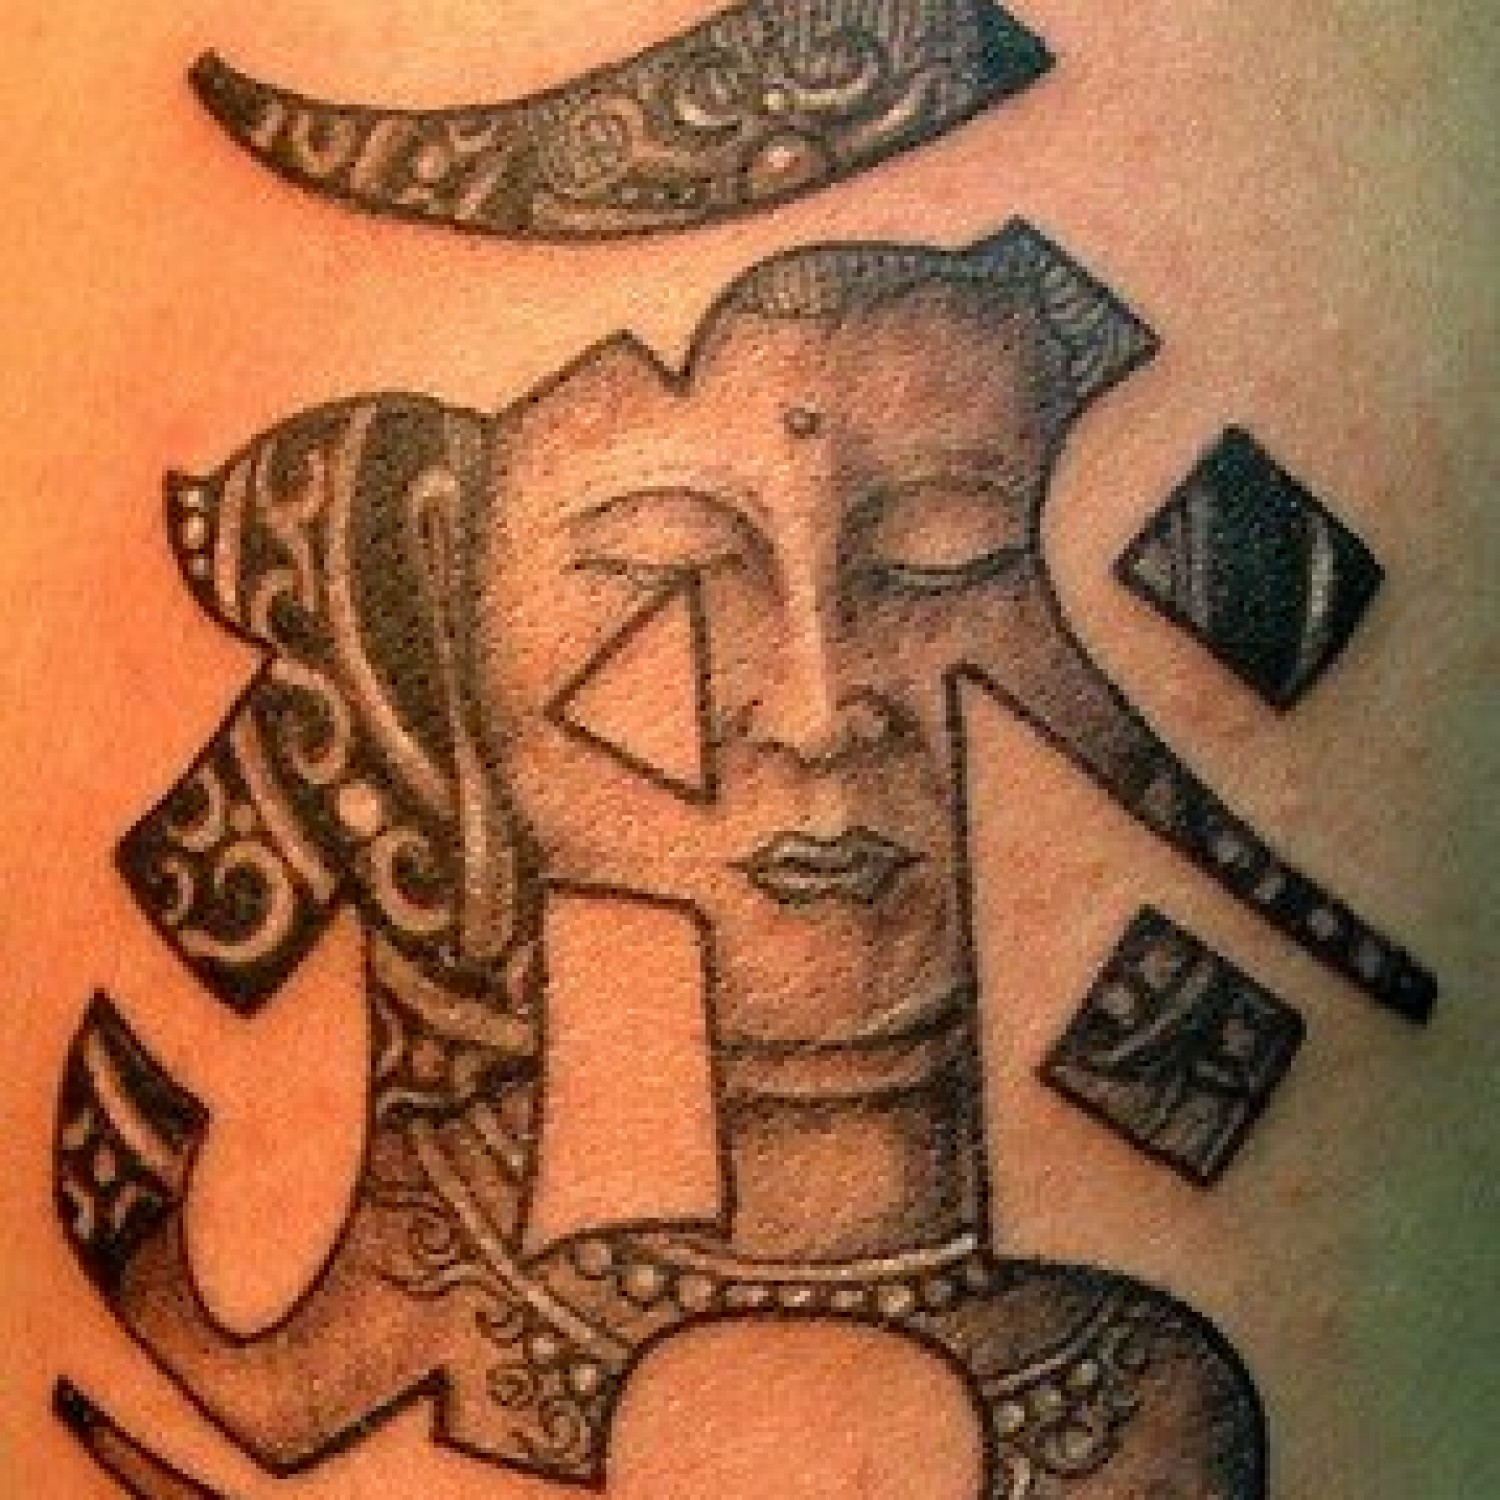 Tattoo Quotes Buddha: Quotes Elephant Buddha Meaning. QuotesGram